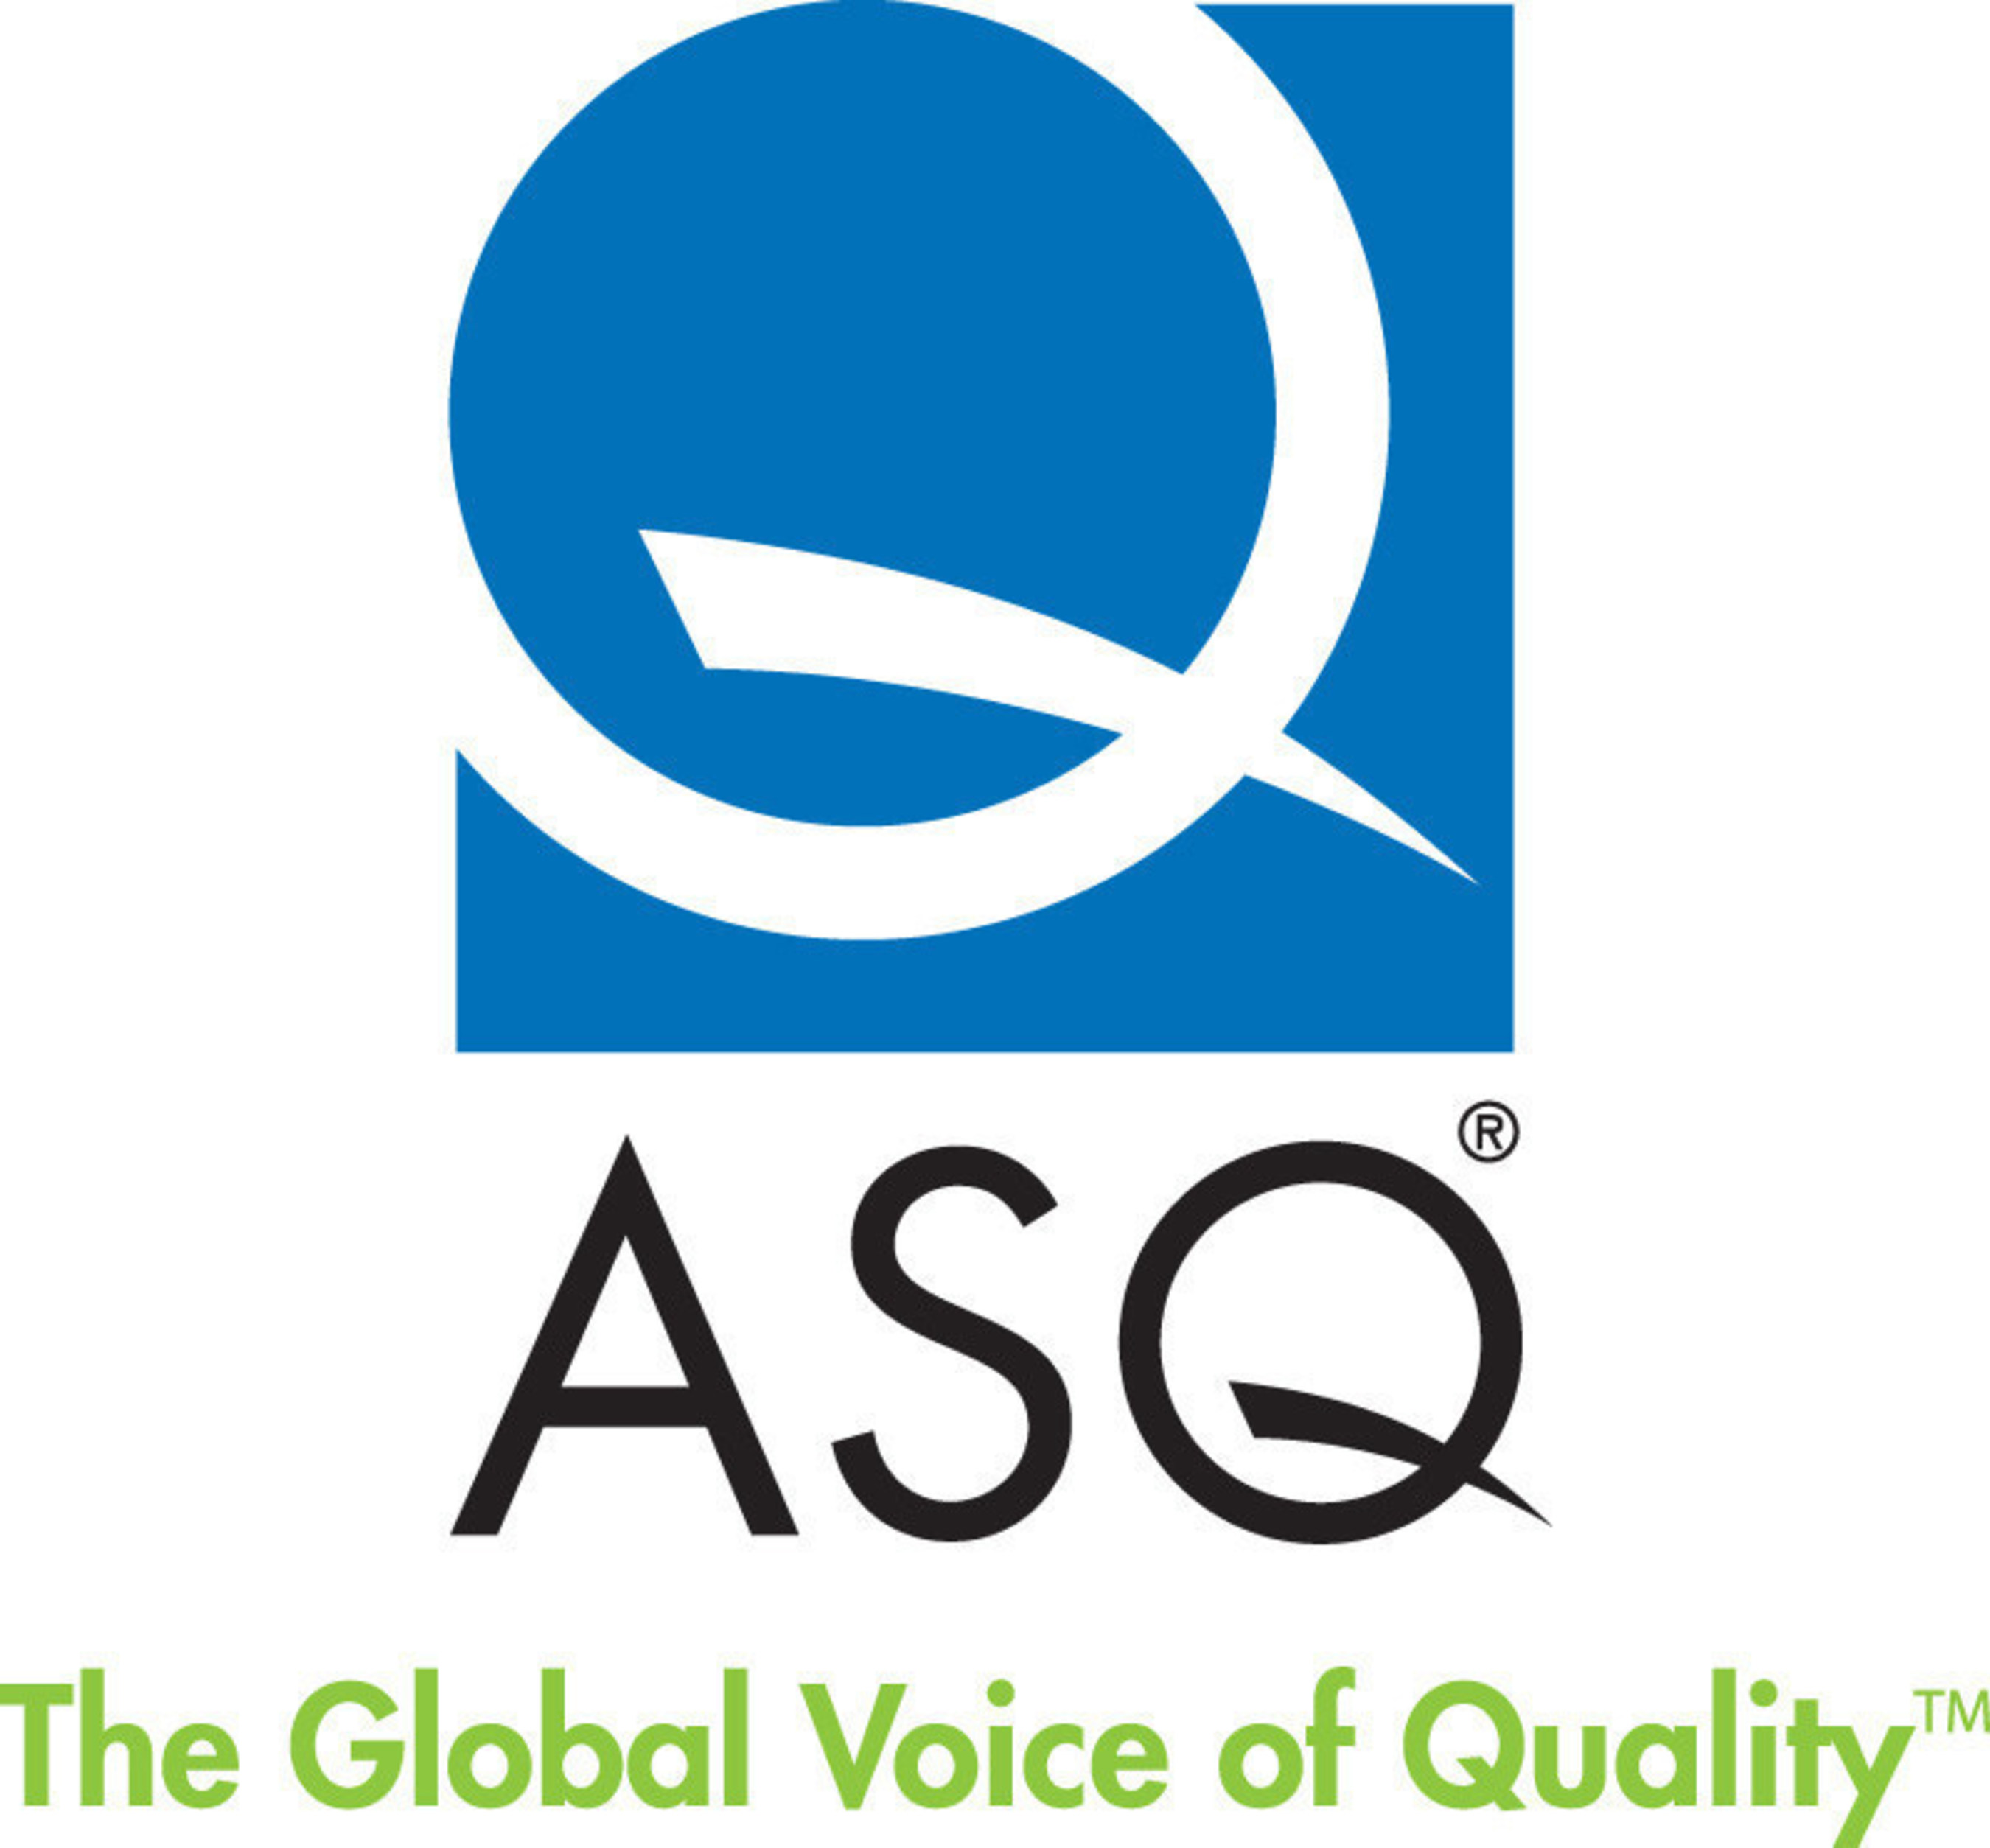 The ASQ presentations will be held in conjunction with UBM Canon at their East Coast trade shows taking place at the same venue, June 9-11.